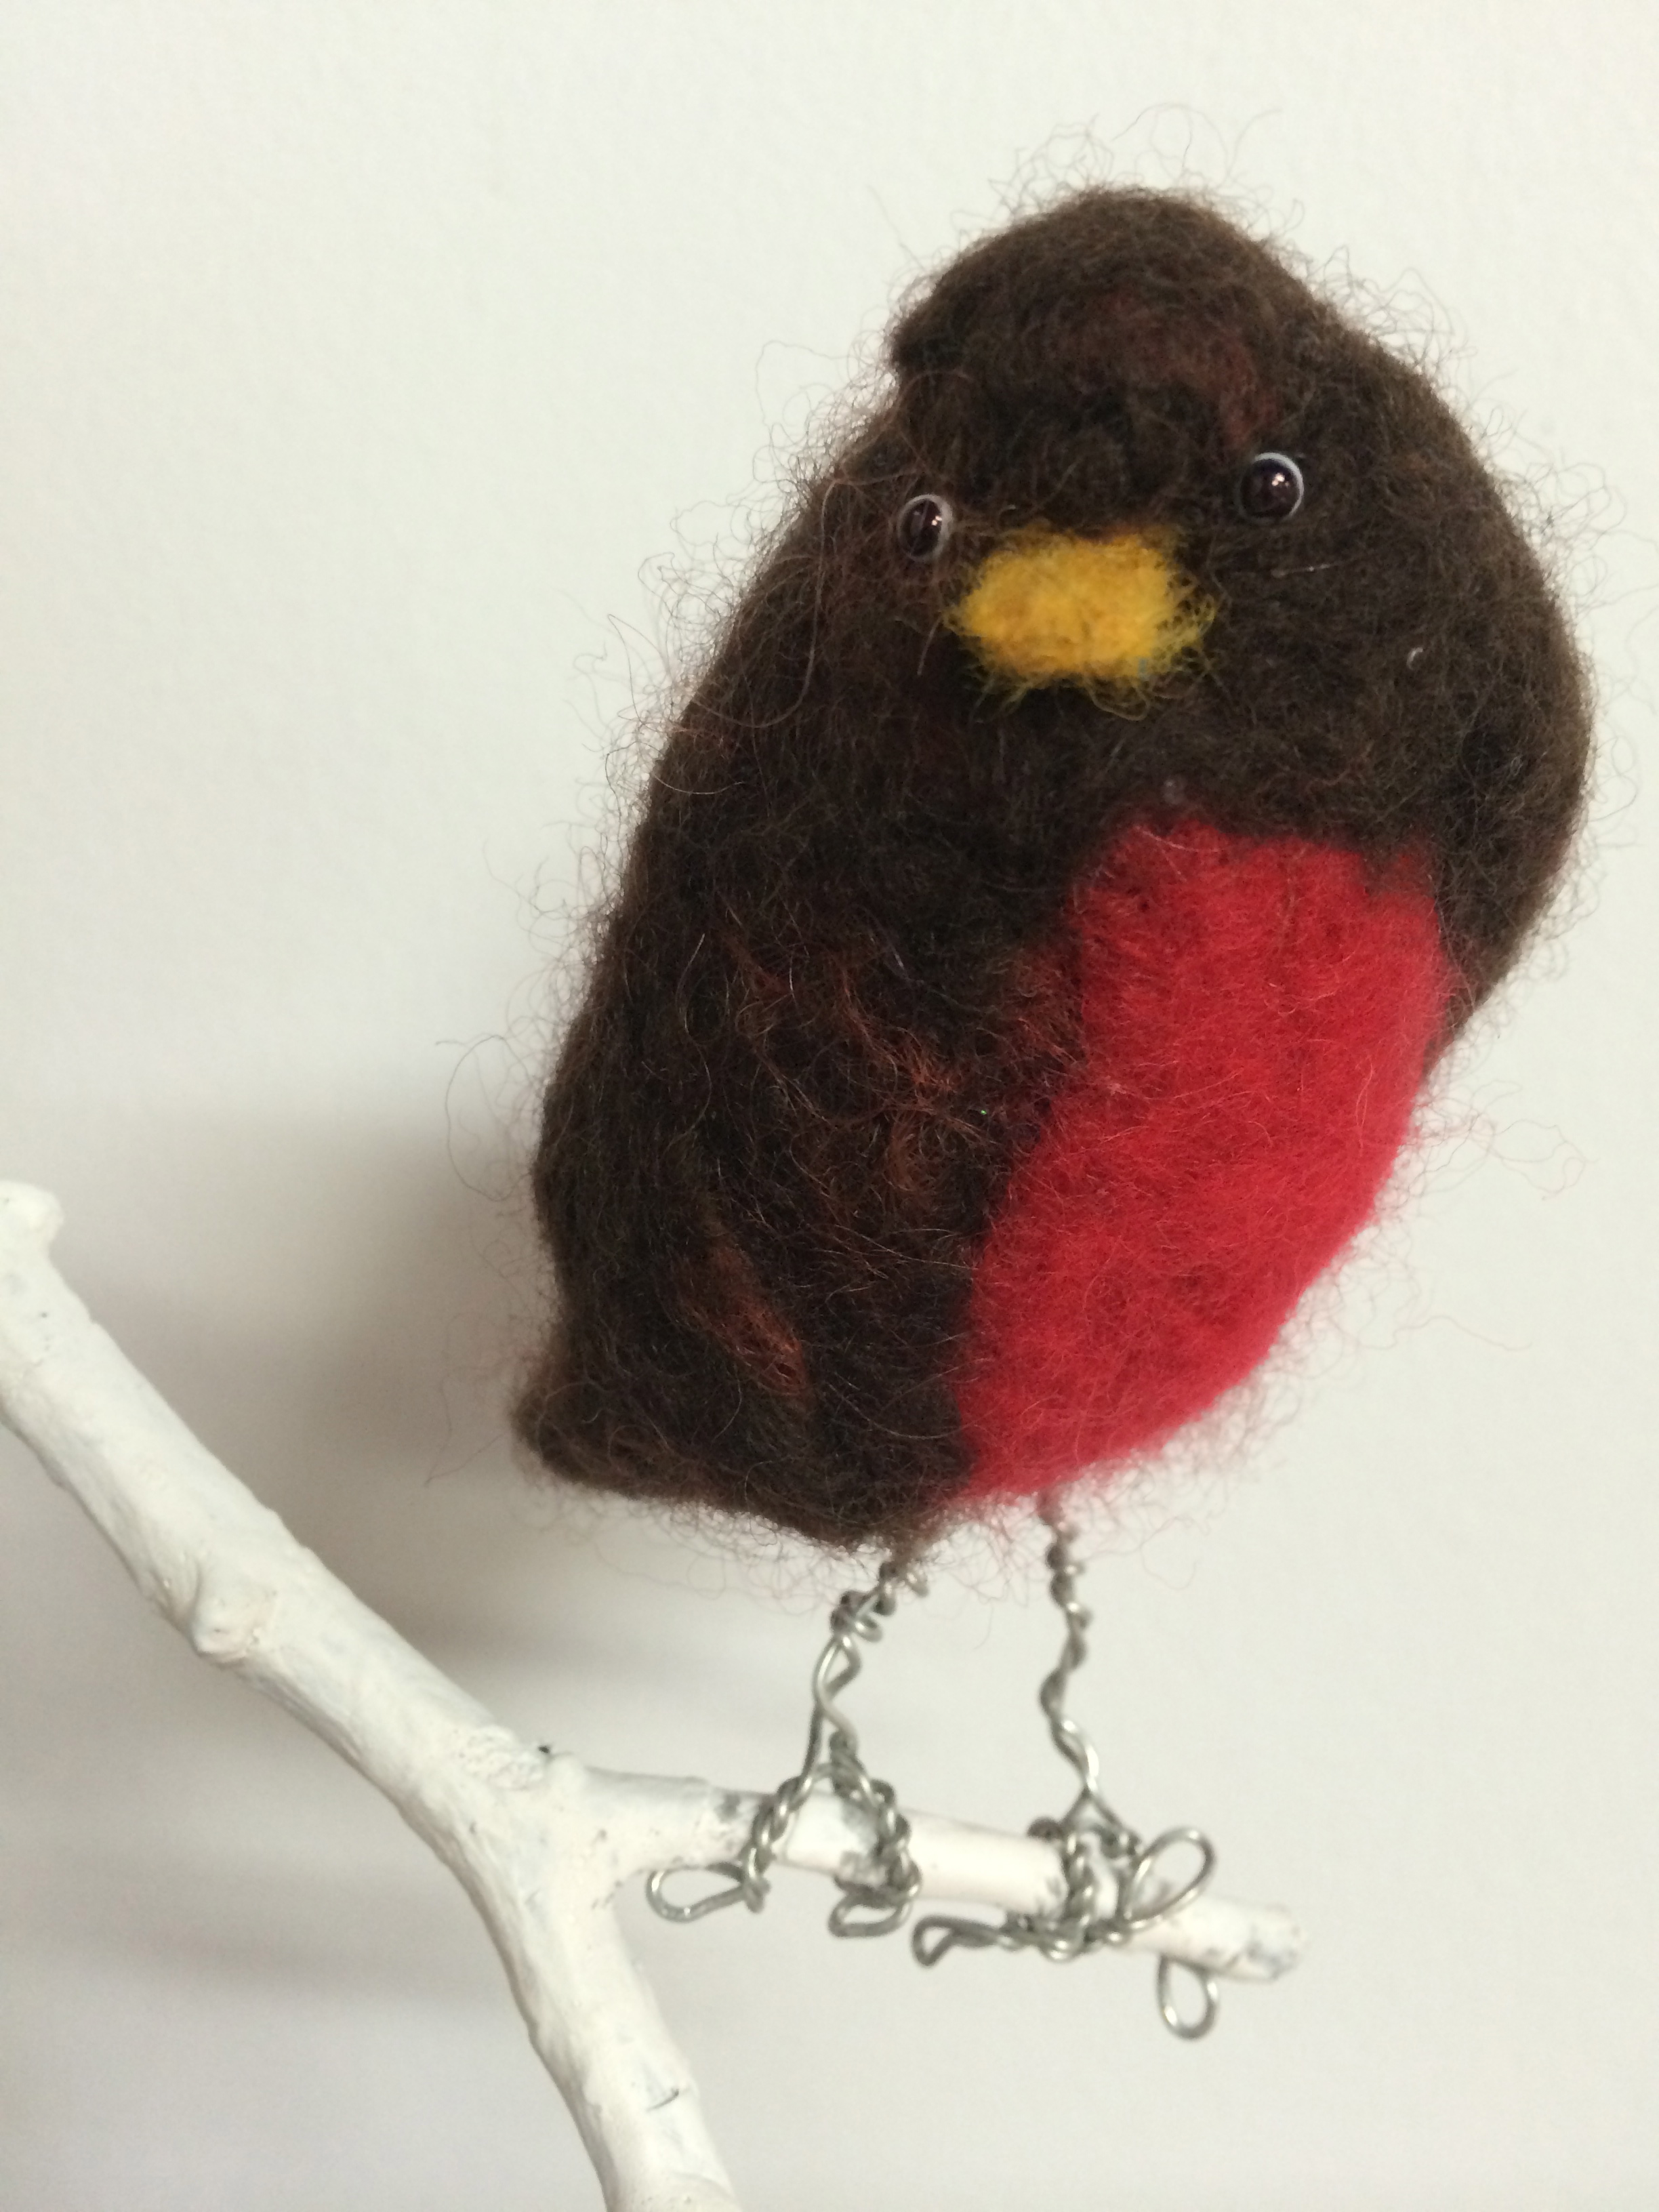 Prototype: Felt, wire, found object bird sculpture - just in time for spring!